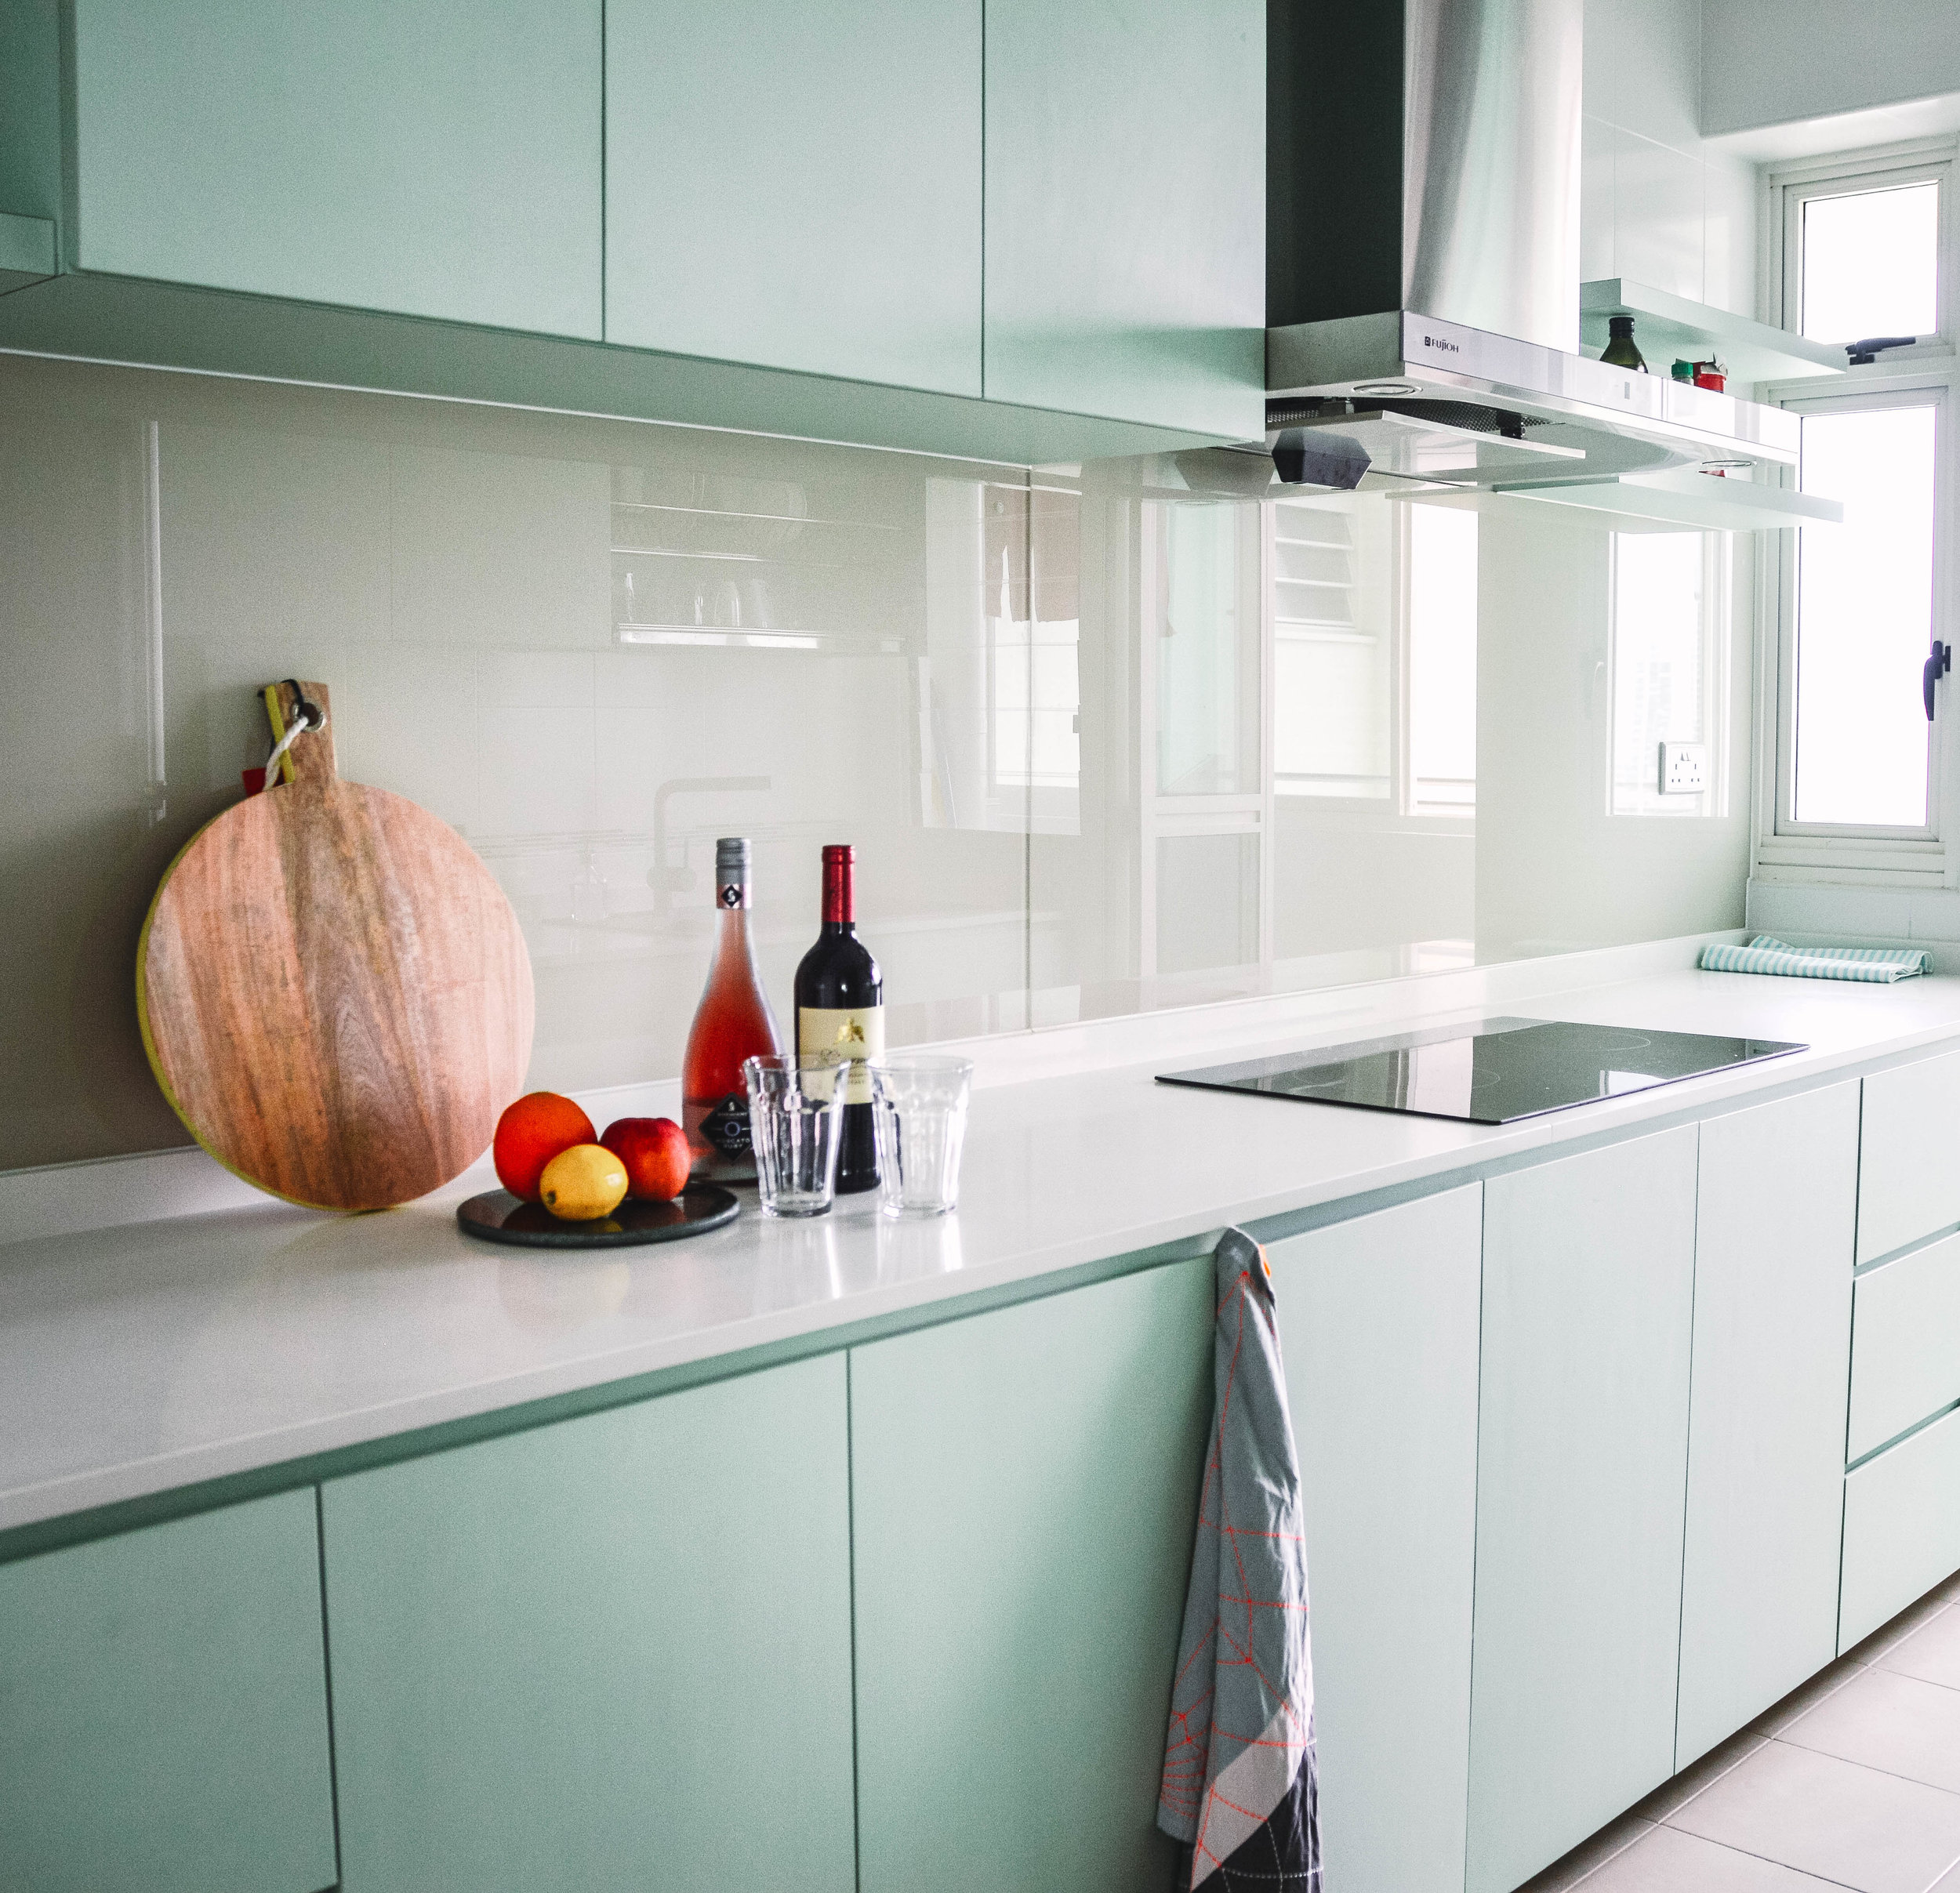 Our mission - We strive to create warm, stylish, and confident spaces for you, your family friends, colleagues and pets